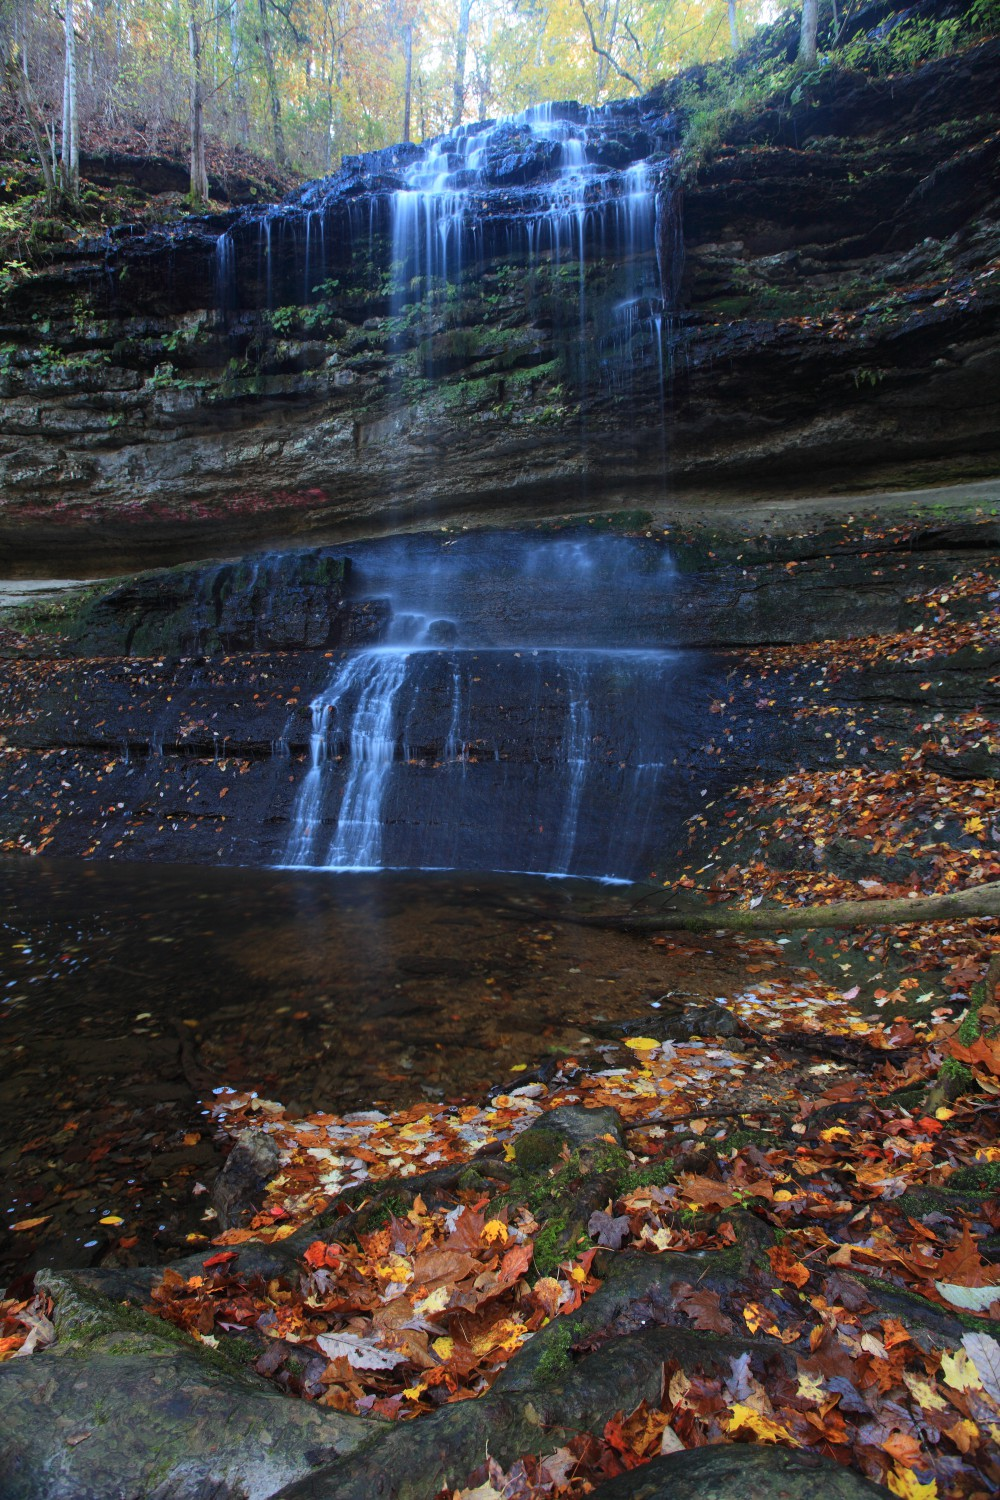 stillhouse hollow falls tennessee author szulecki joshua